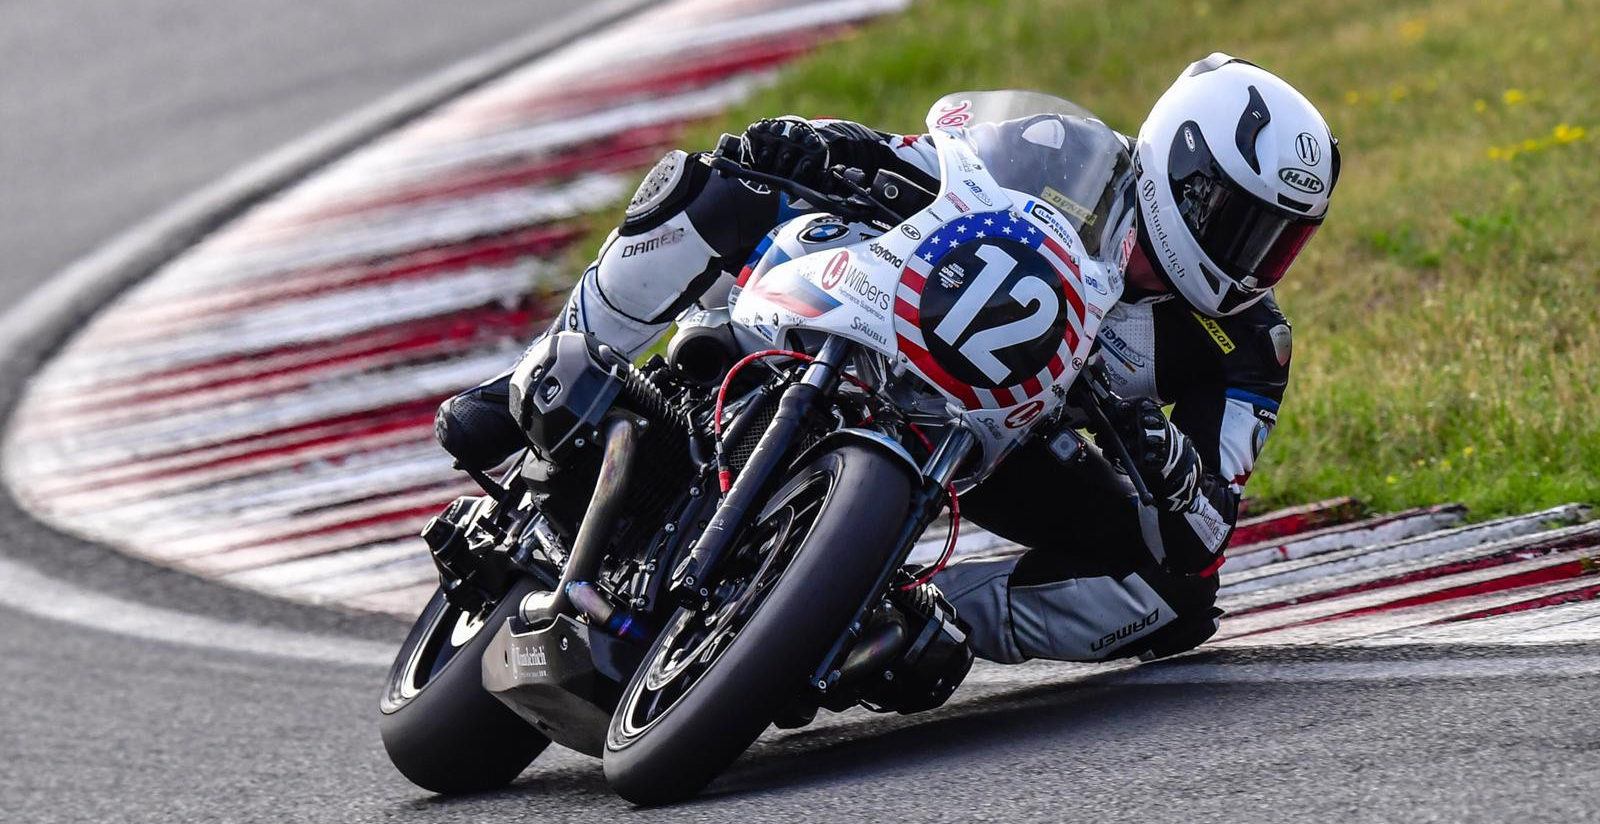 American Nate Kern (12) in action during the 2019 BMW Motorrad BoxerCup. Photo courtesy of Wunderlich Motorsport.